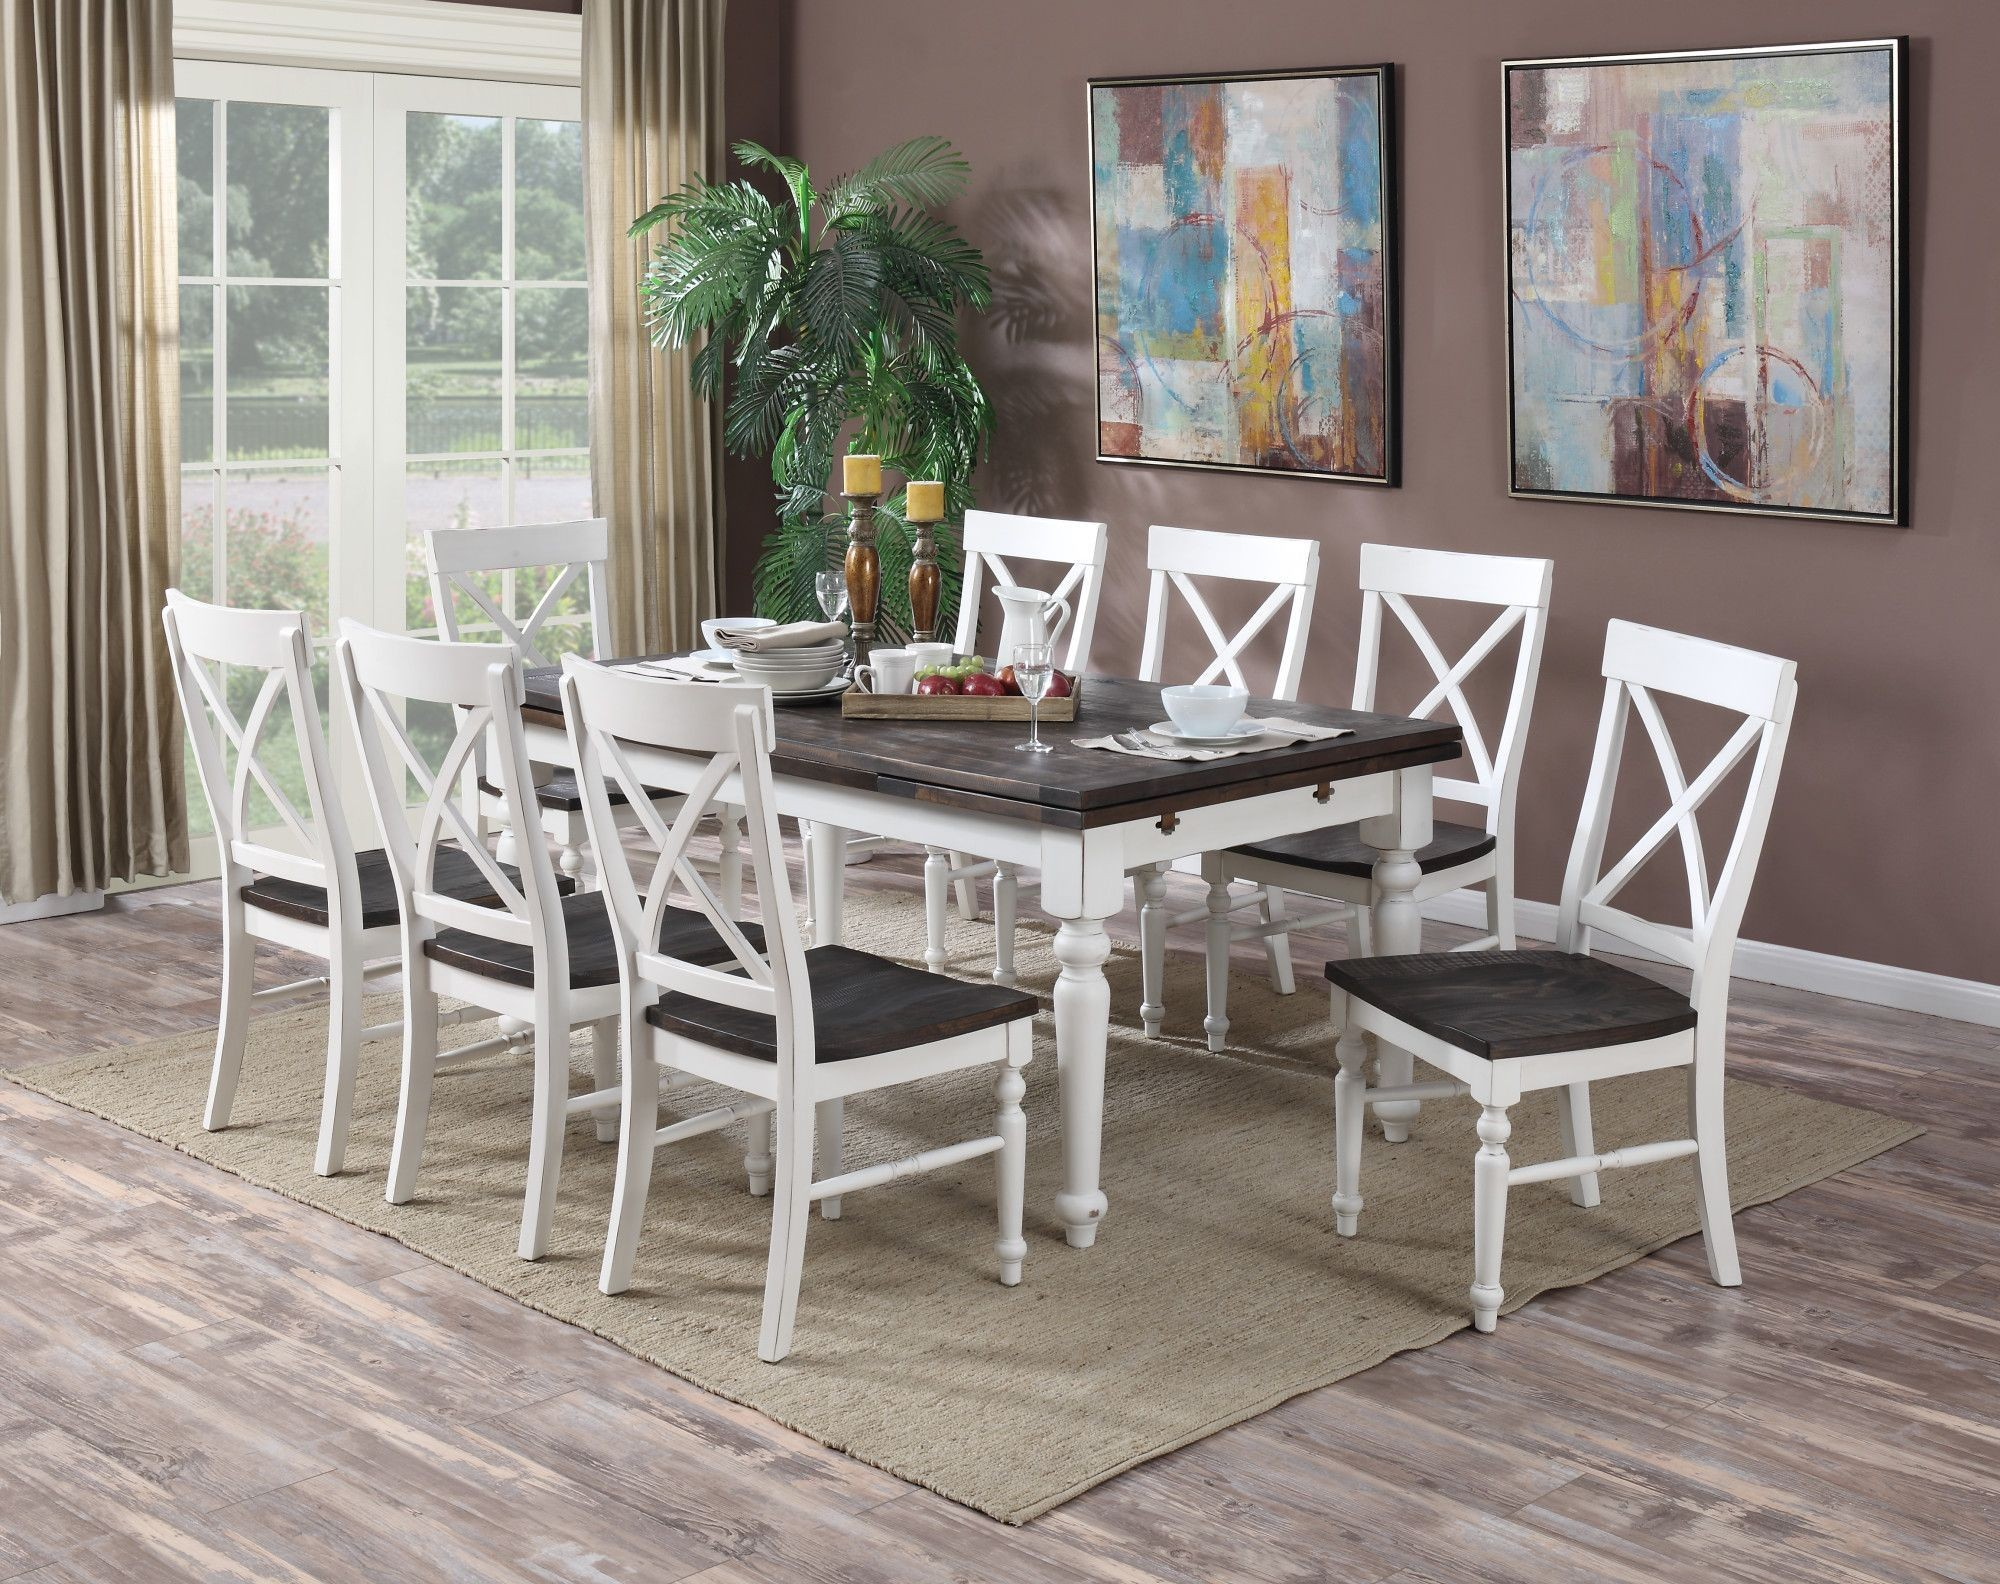 Mountain Retreat Brown And White Extendable Rectangular Dining Room Set,  D601 10 D601 20, Emerald Home Furnishings